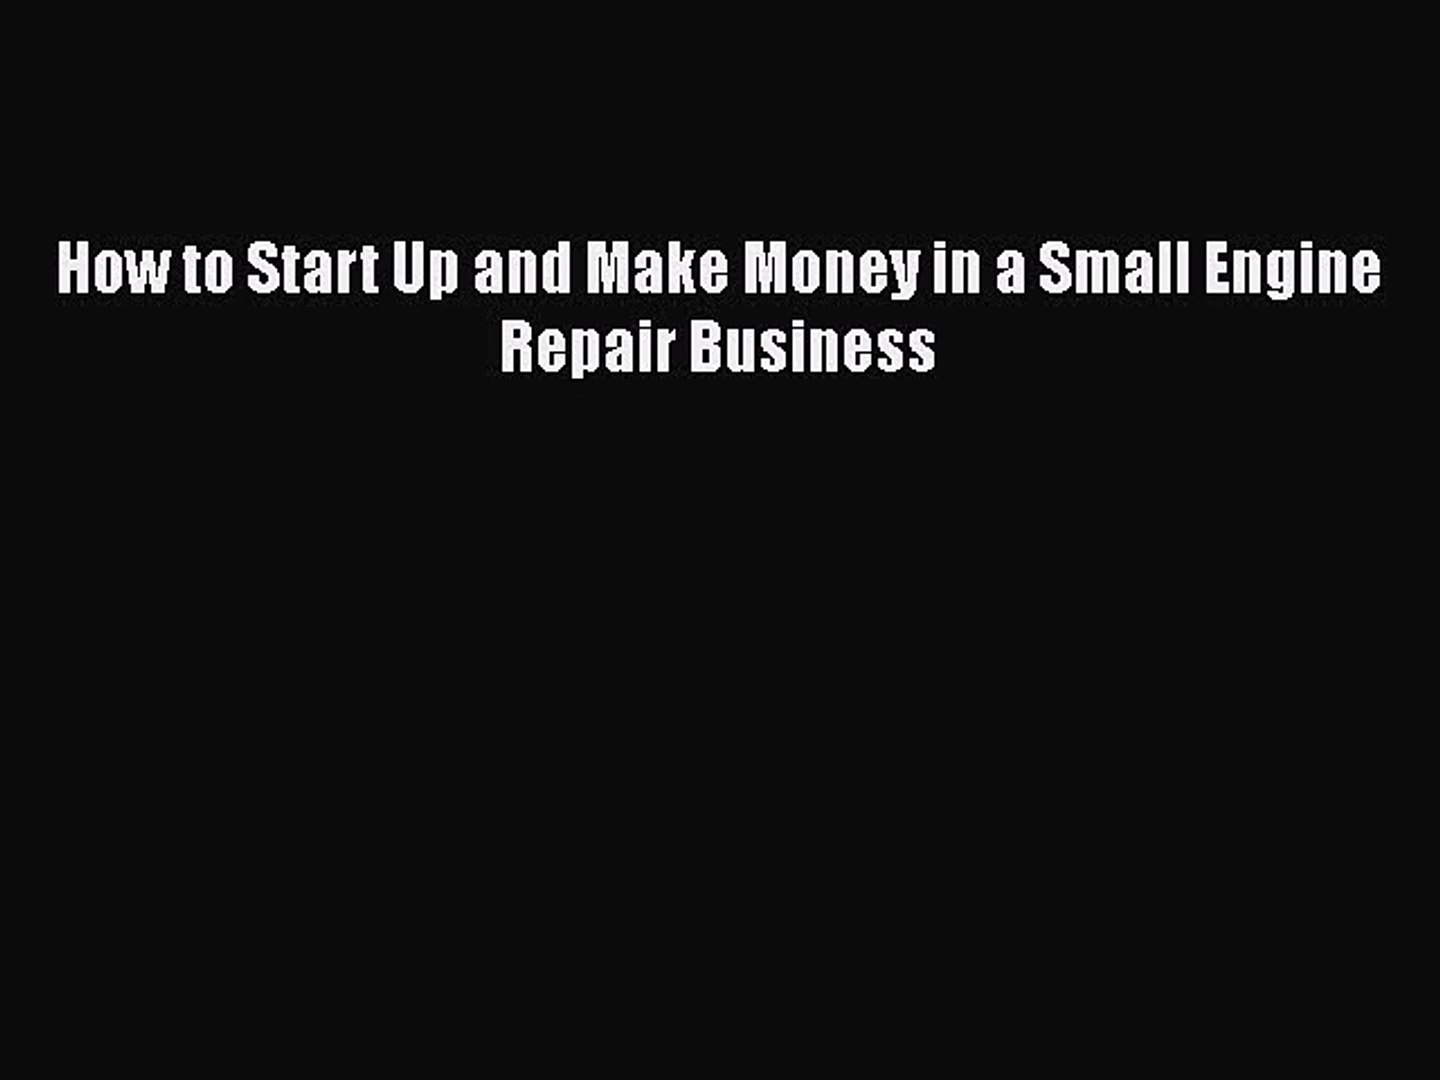 Make Money In A Small Engine